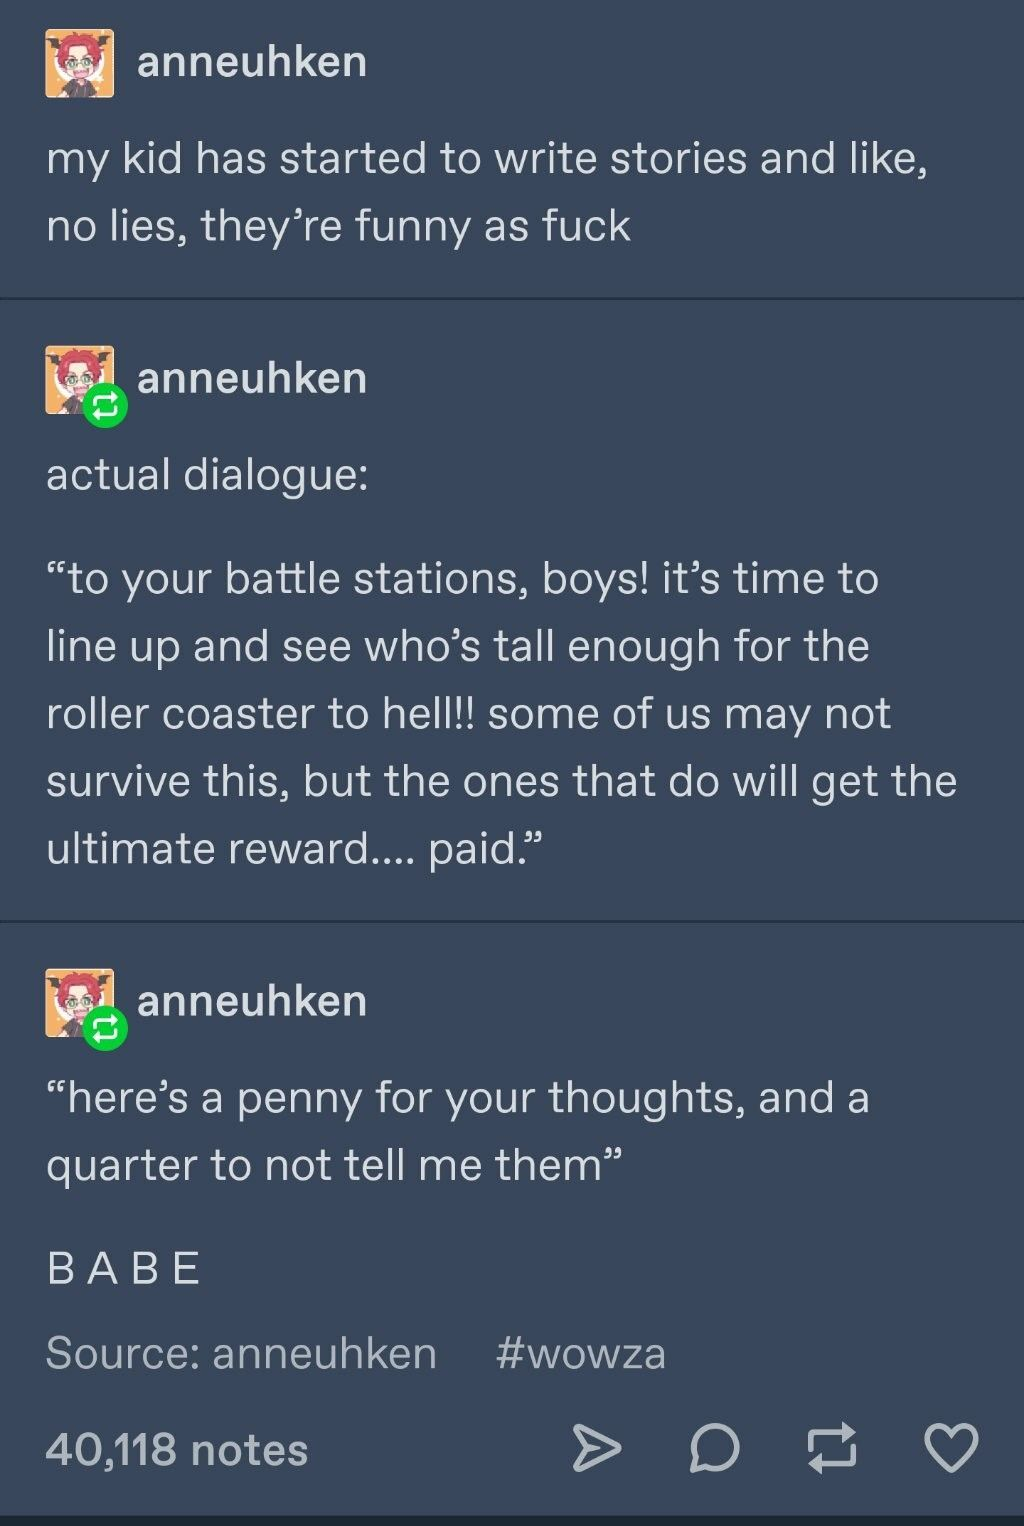 Funny Story From A Child Heh Funny Story From A Child Funny Stories Funny Tumblr Funny